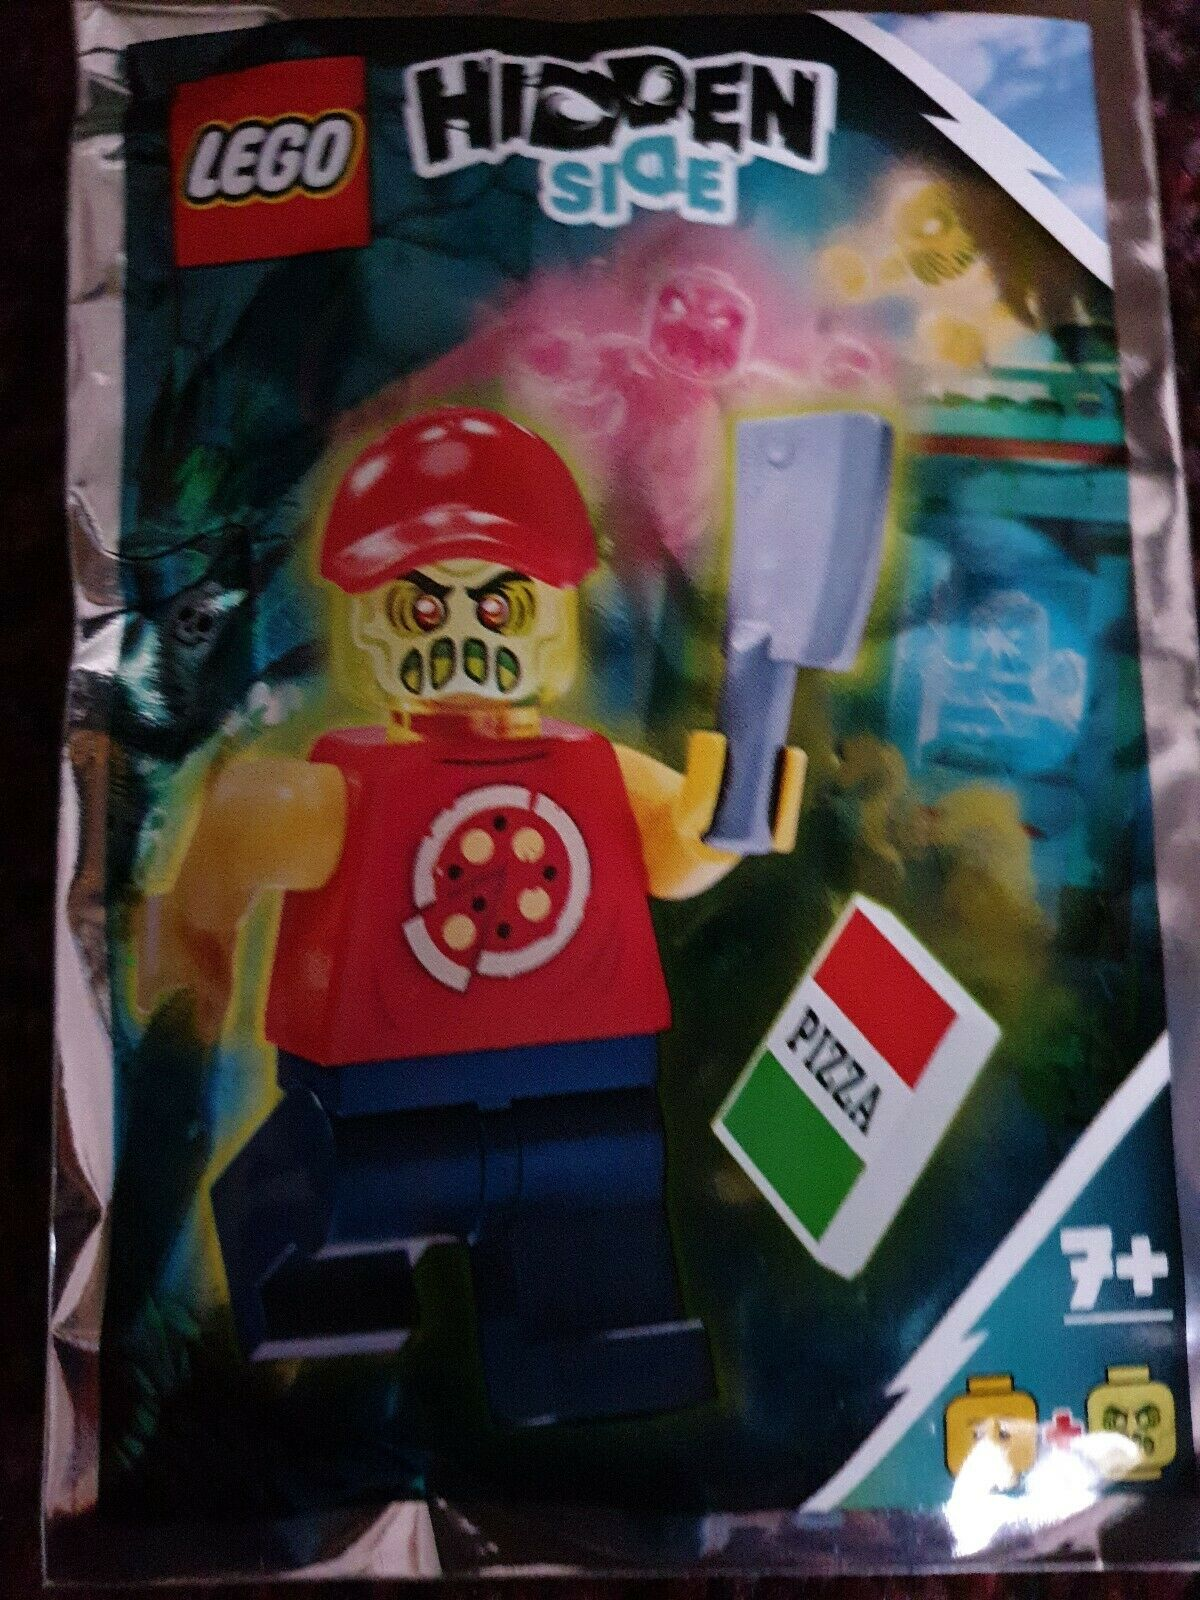 791902 ORIGINAL LEGO Hidden Side Possessed Pizza Delivery Man Minifigure